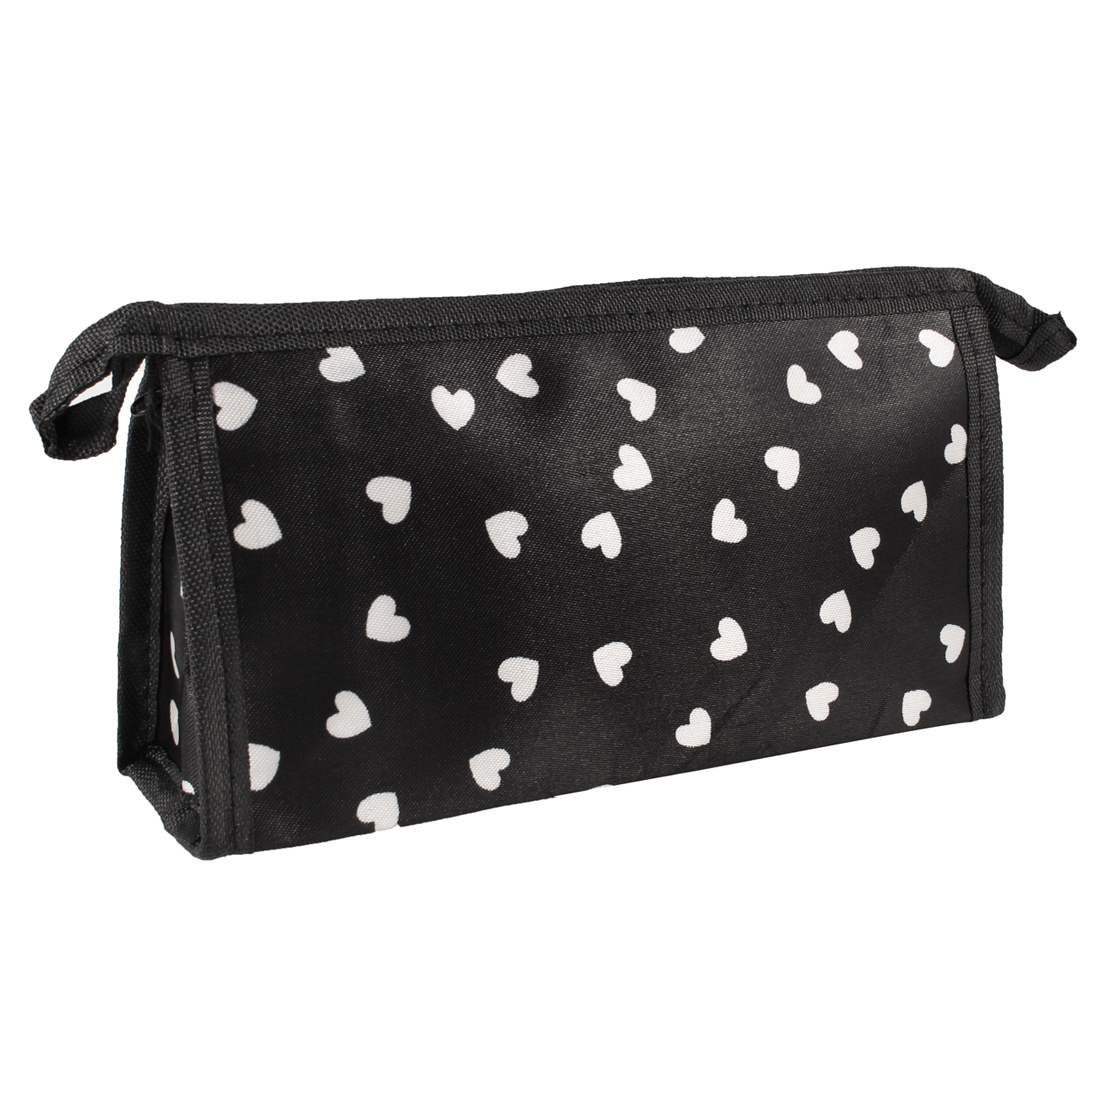 White Hearted Pattern Black Zip Up Retangular Shape Cosmetic Bag for Women